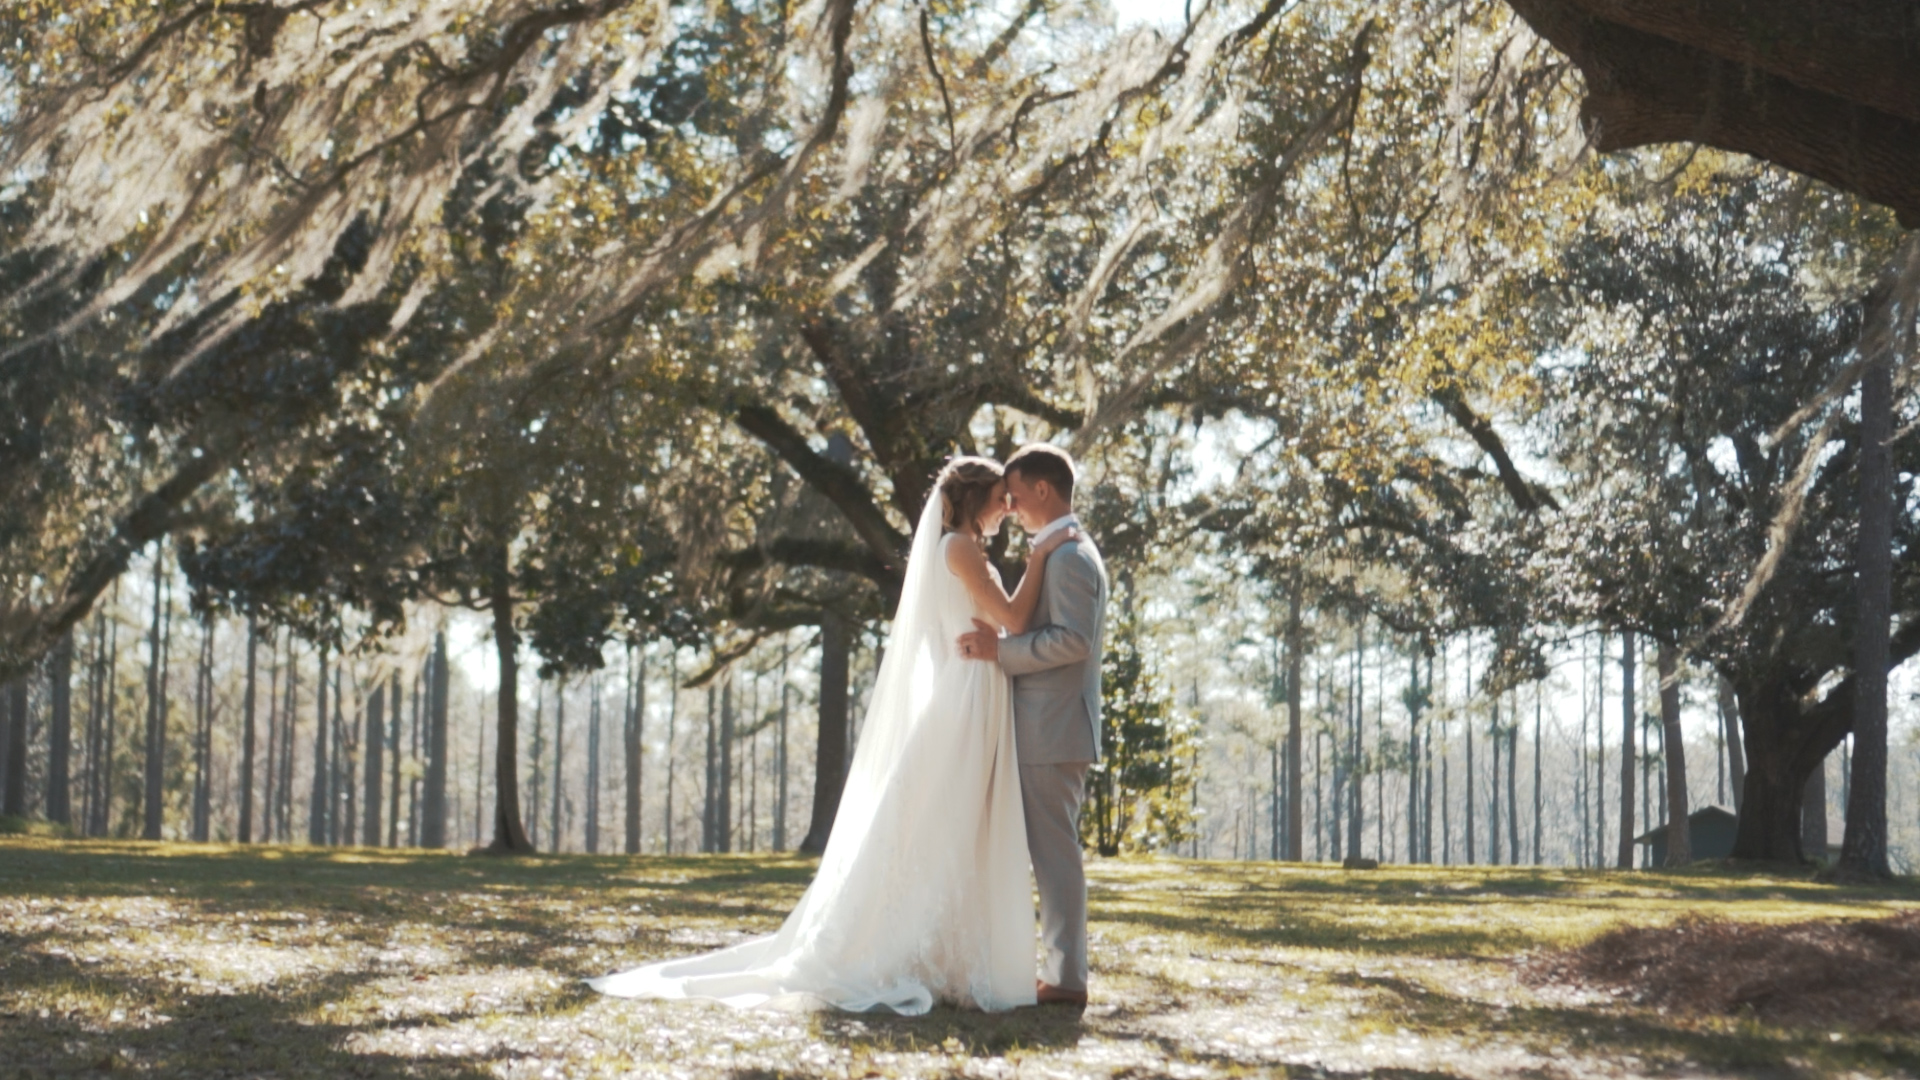 Bride and groom can't stop smiling after tropical wedding ceremony!